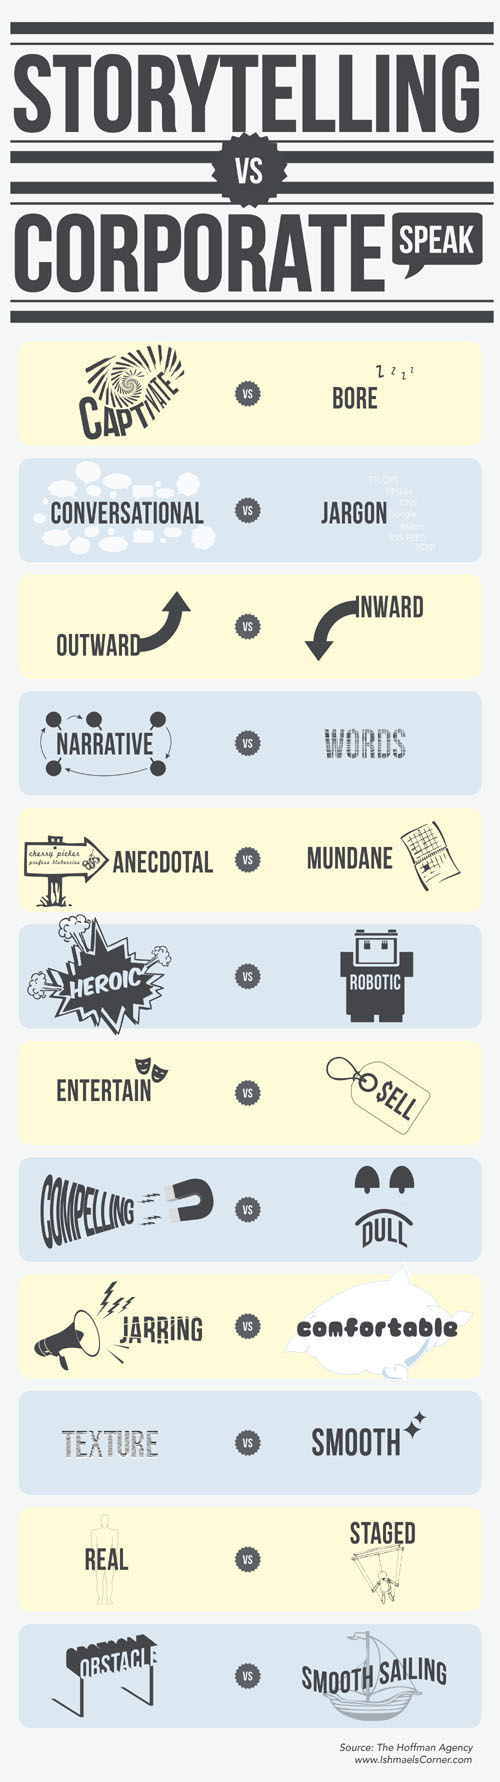 storytelling-vs-corporate-speak-infographic